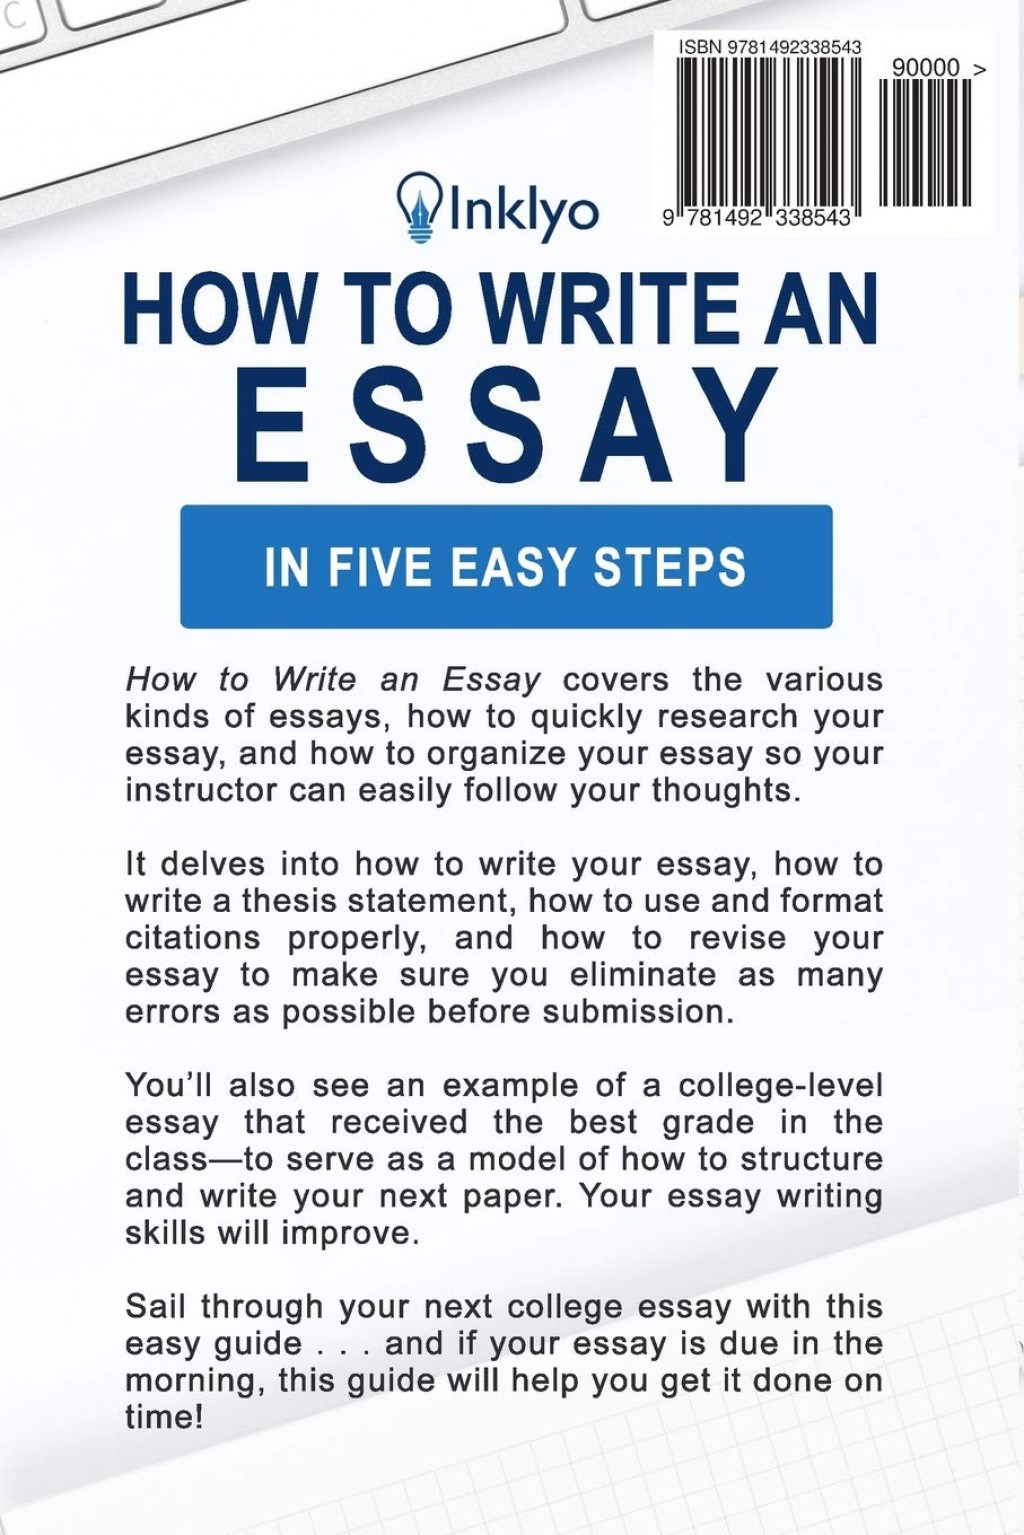 005 Essay Steps 71v7ckw5pll Formidable Writing Process To An About Yourself Large